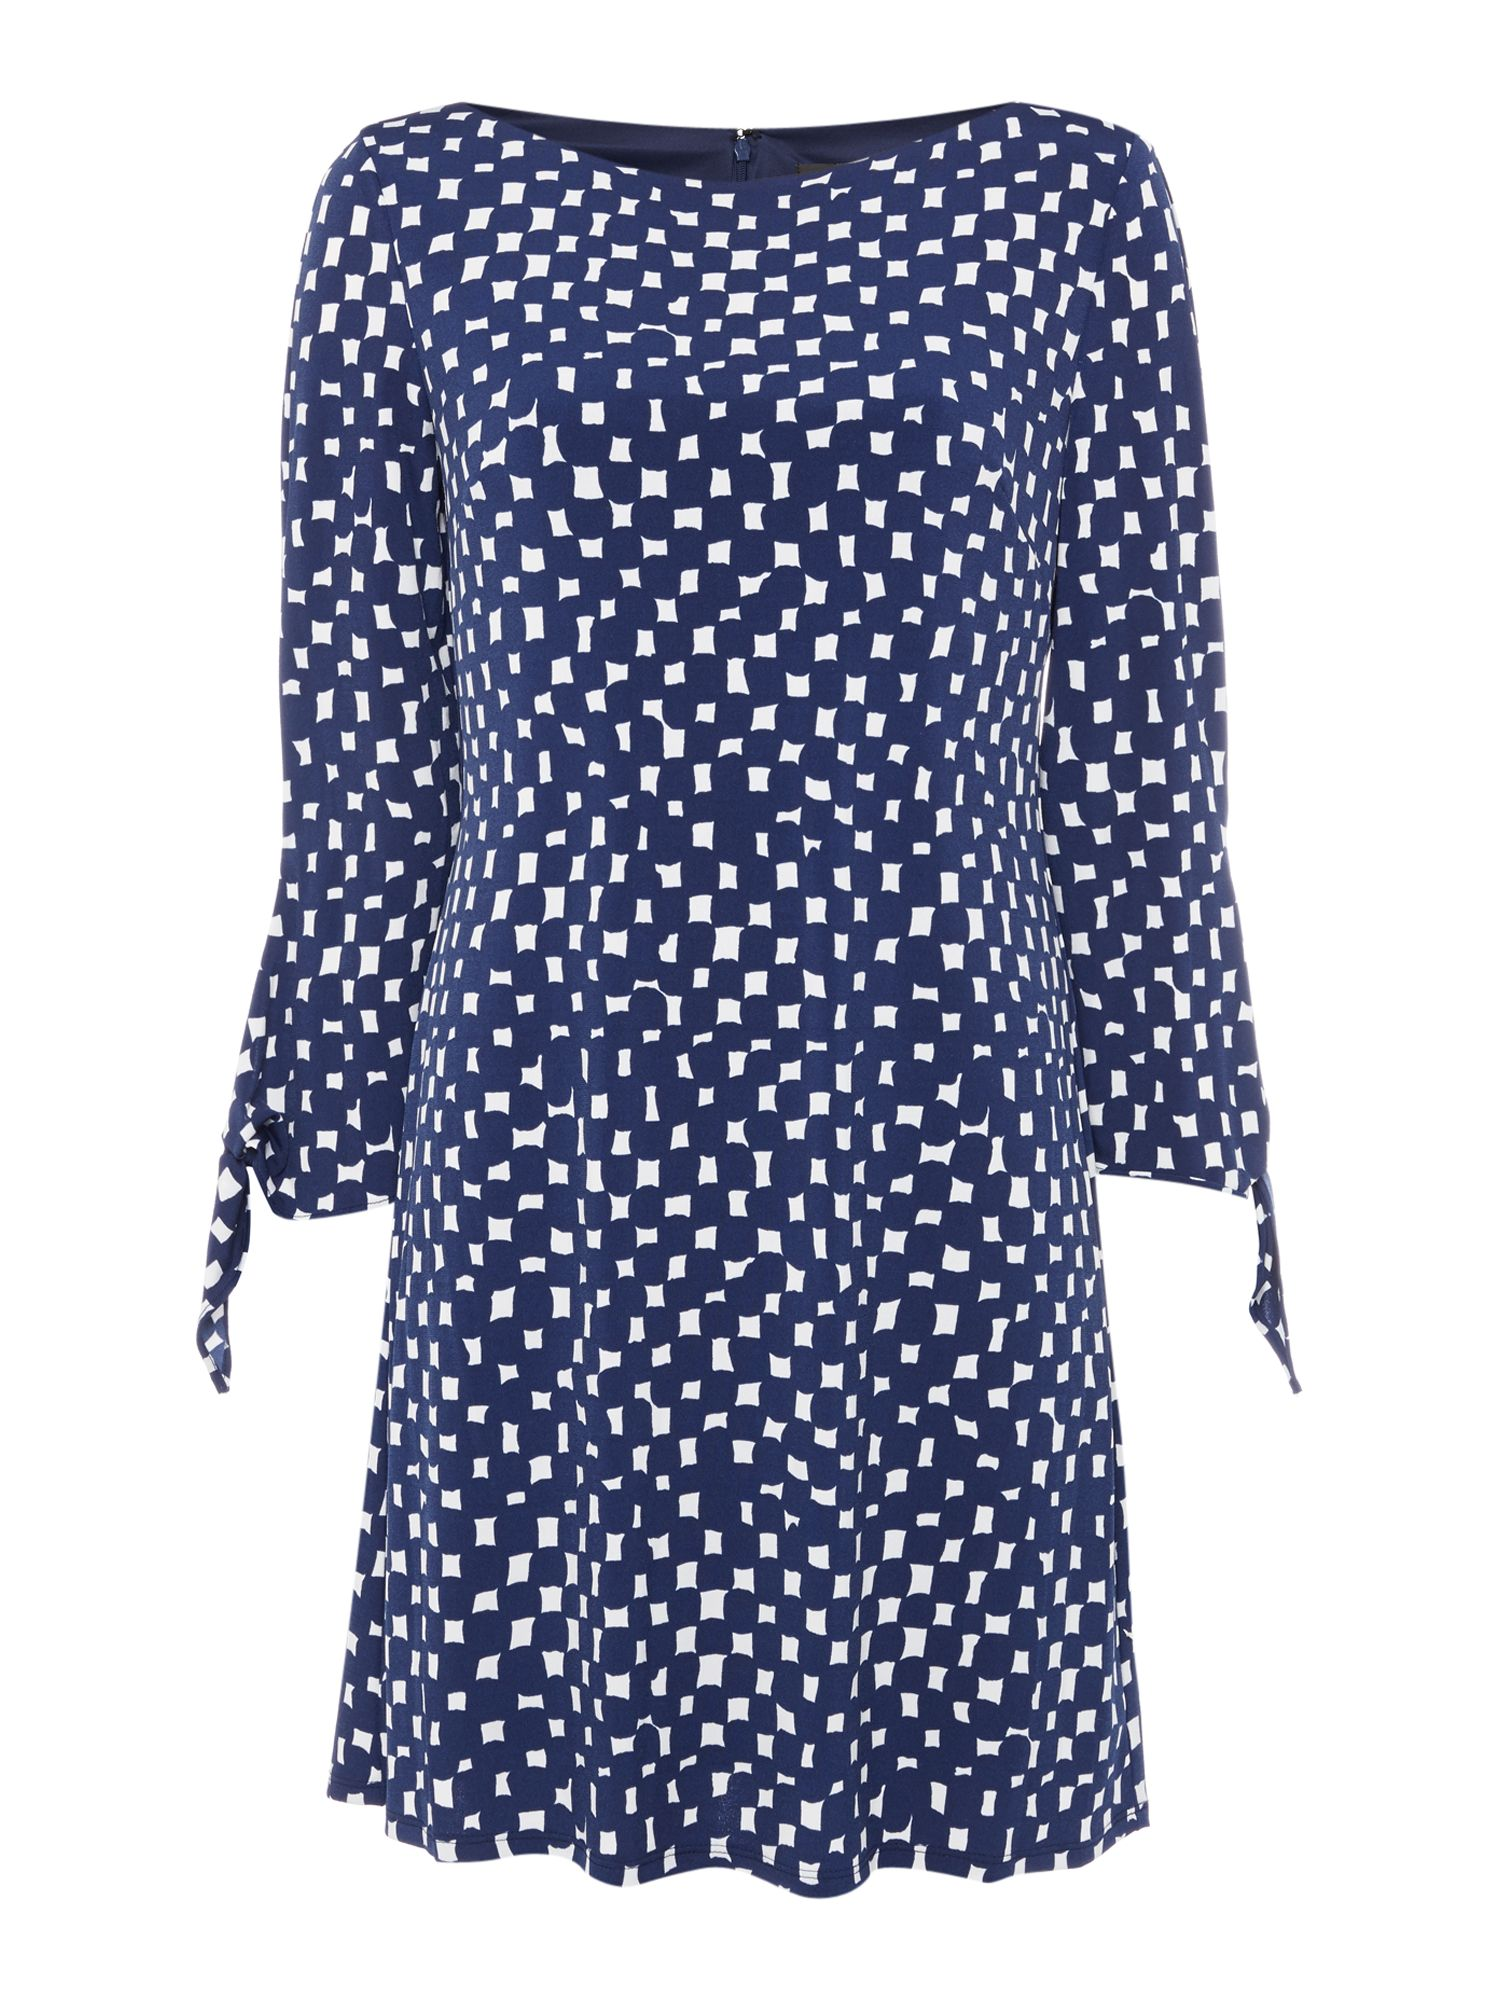 Tahari ASL Tunic Dress In Abstract Spotted Print, Blue